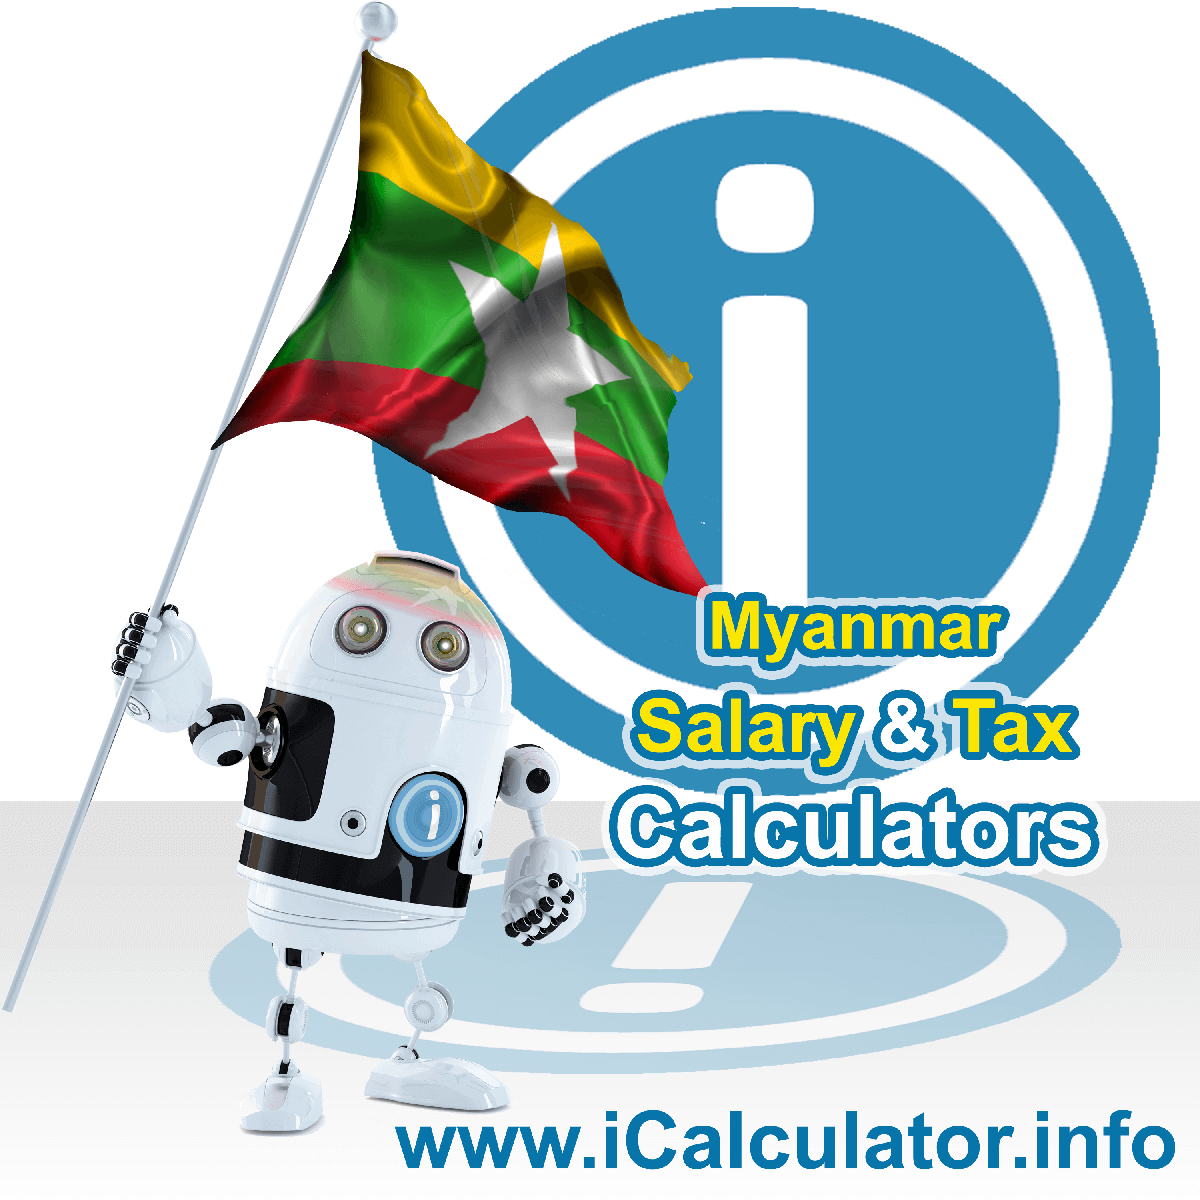 Myanmar Wage Calculator. This image shows the Myanmar flag and information relating to the tax formula for the Myanmar Tax Calculator